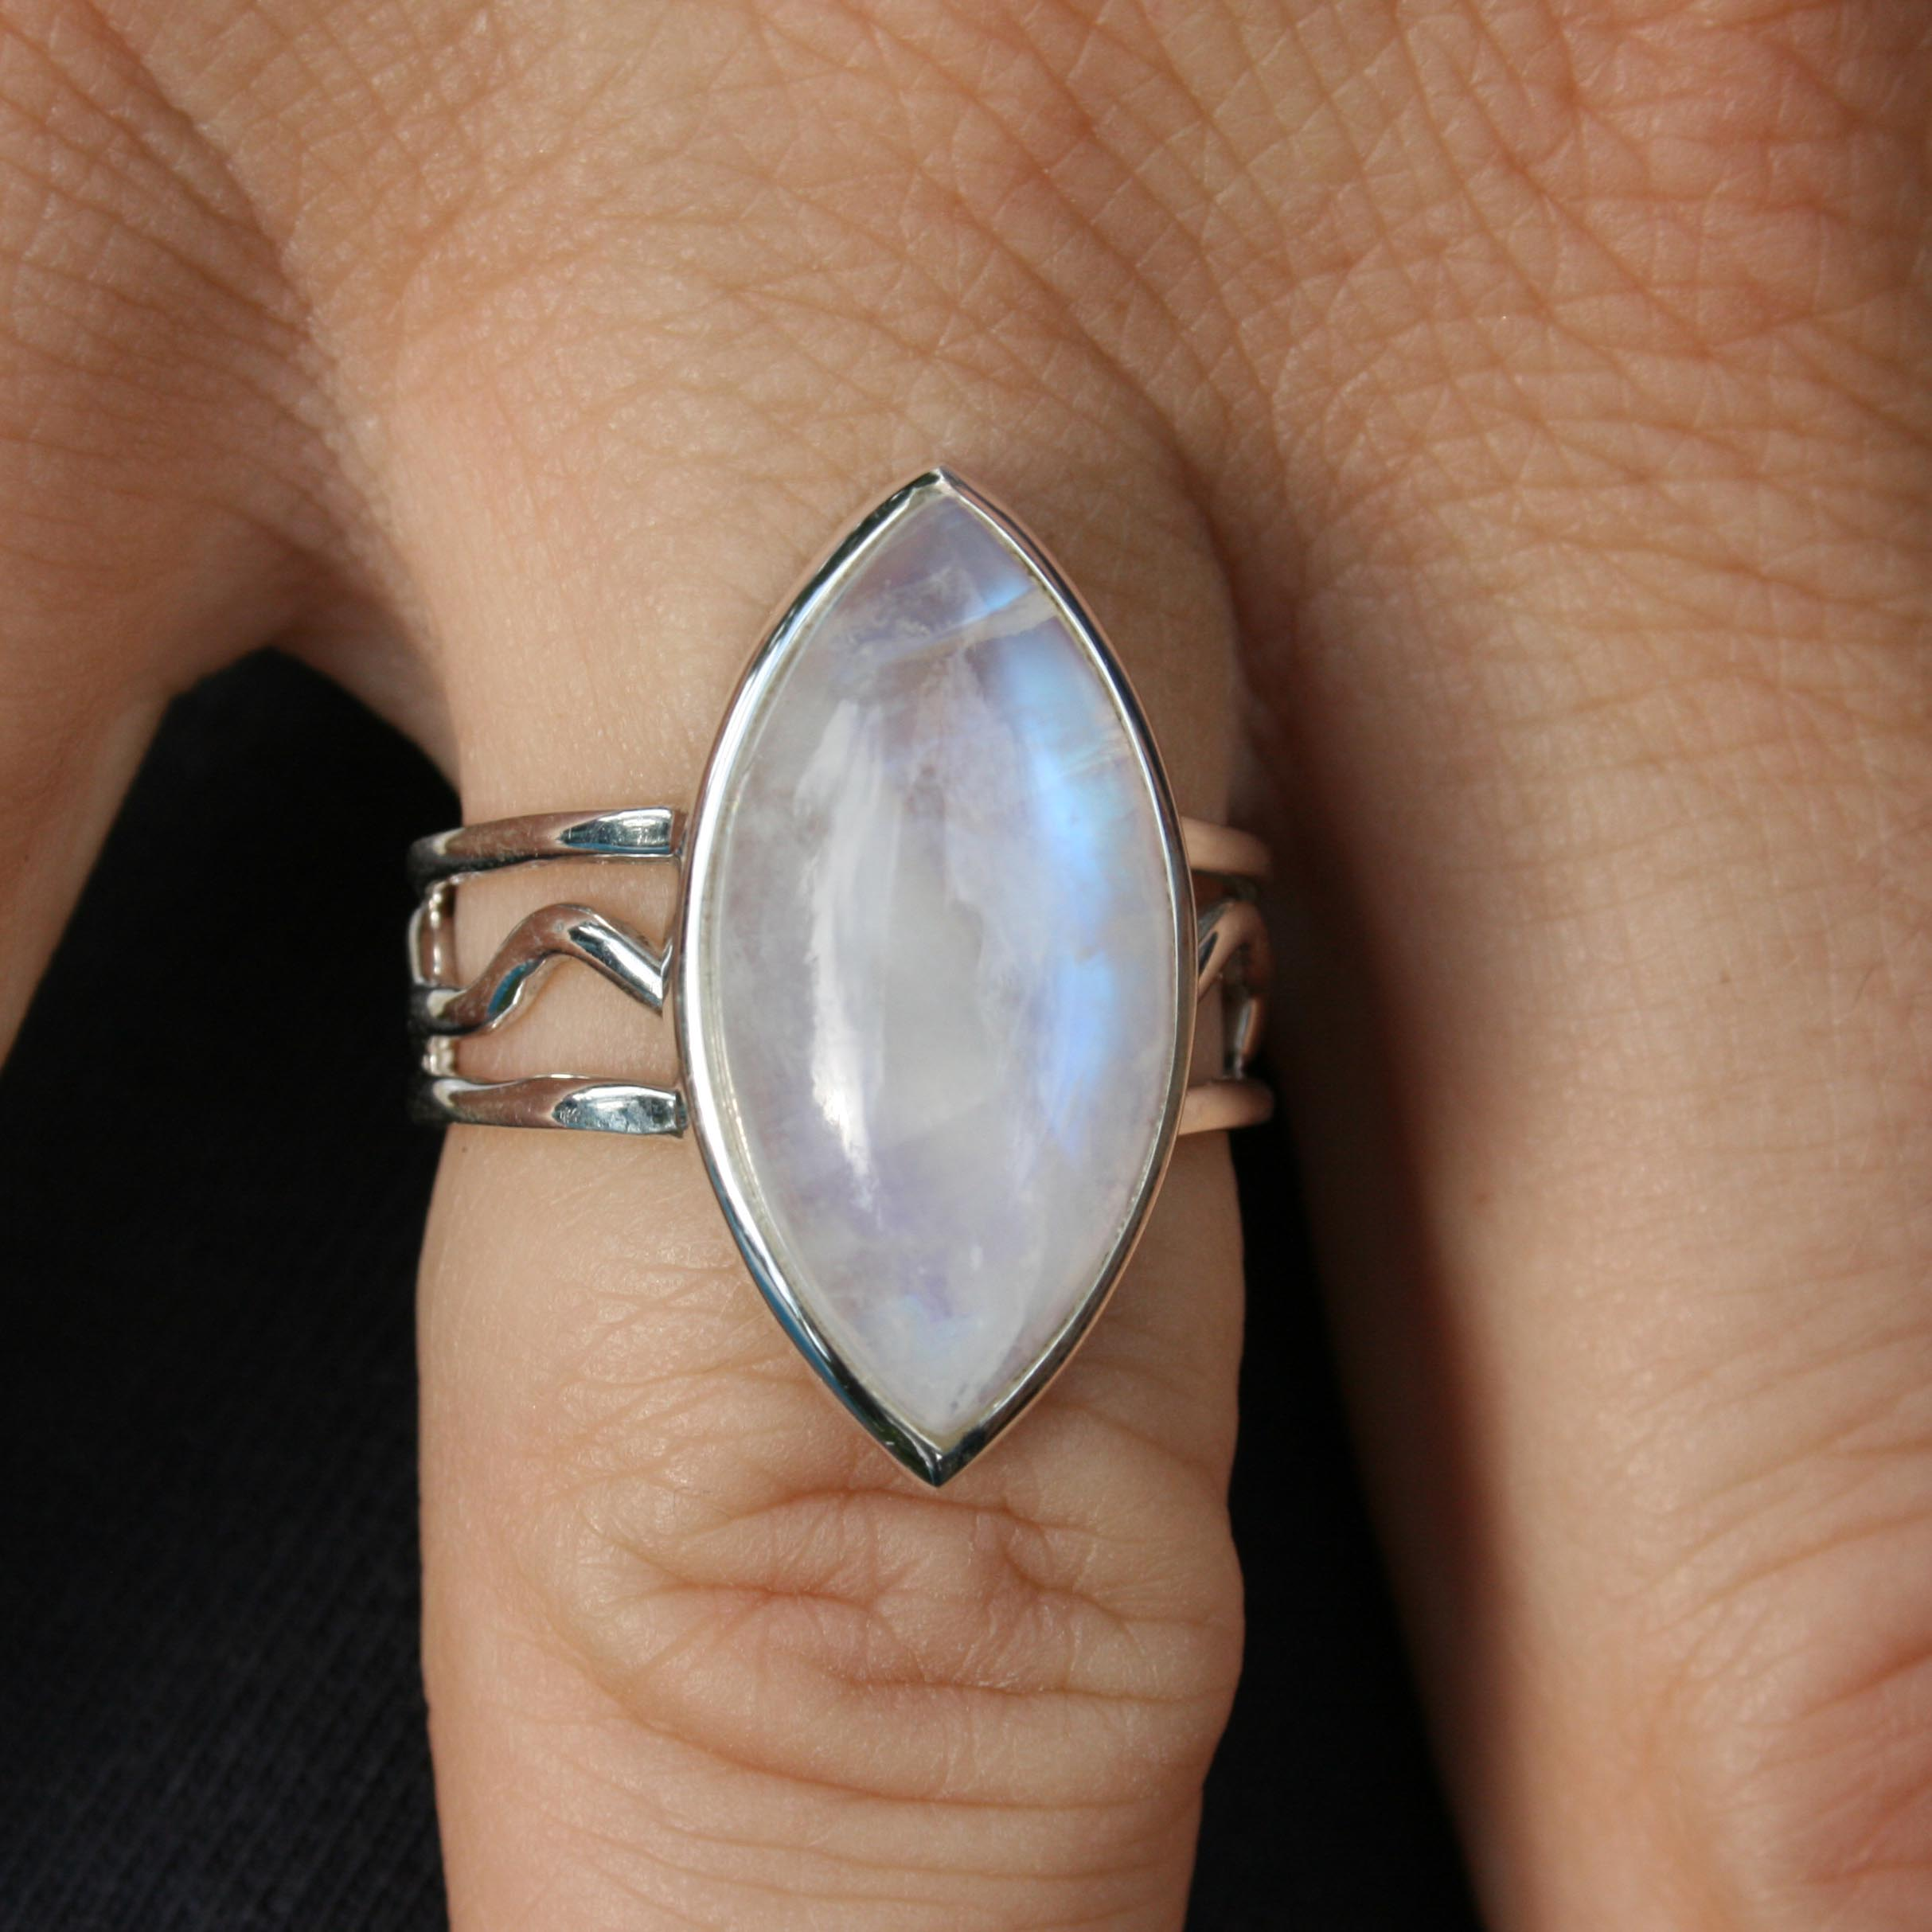 watches overstock handmade moonstone shipping product glorious orders on rainbow rings free vines indonesia silver over sterling ring jewelry